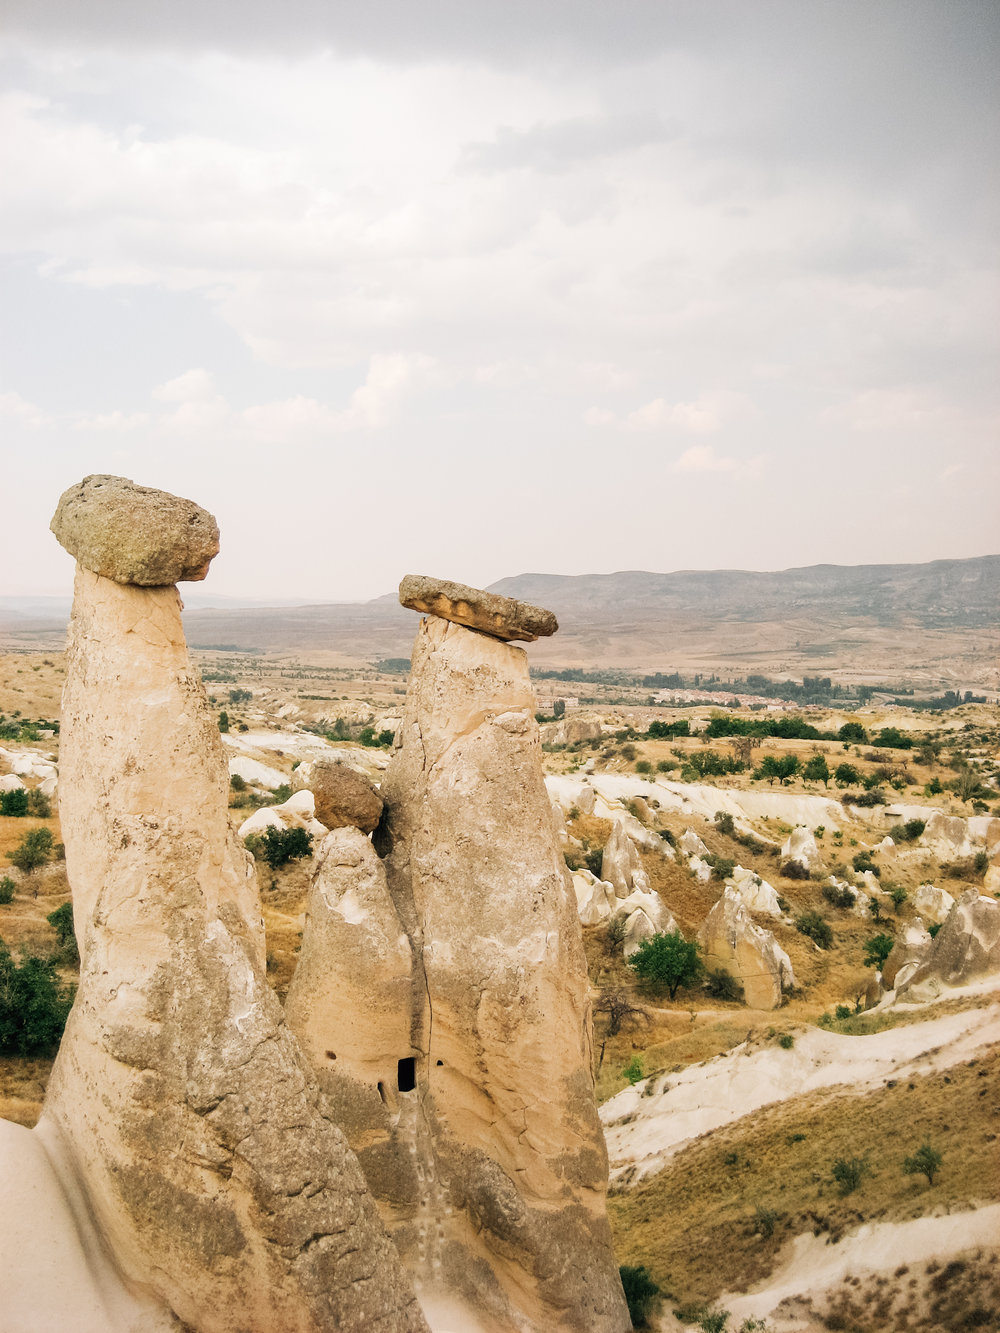 The rocks of Cappadocia twist and turn from the ground in thick stalks -